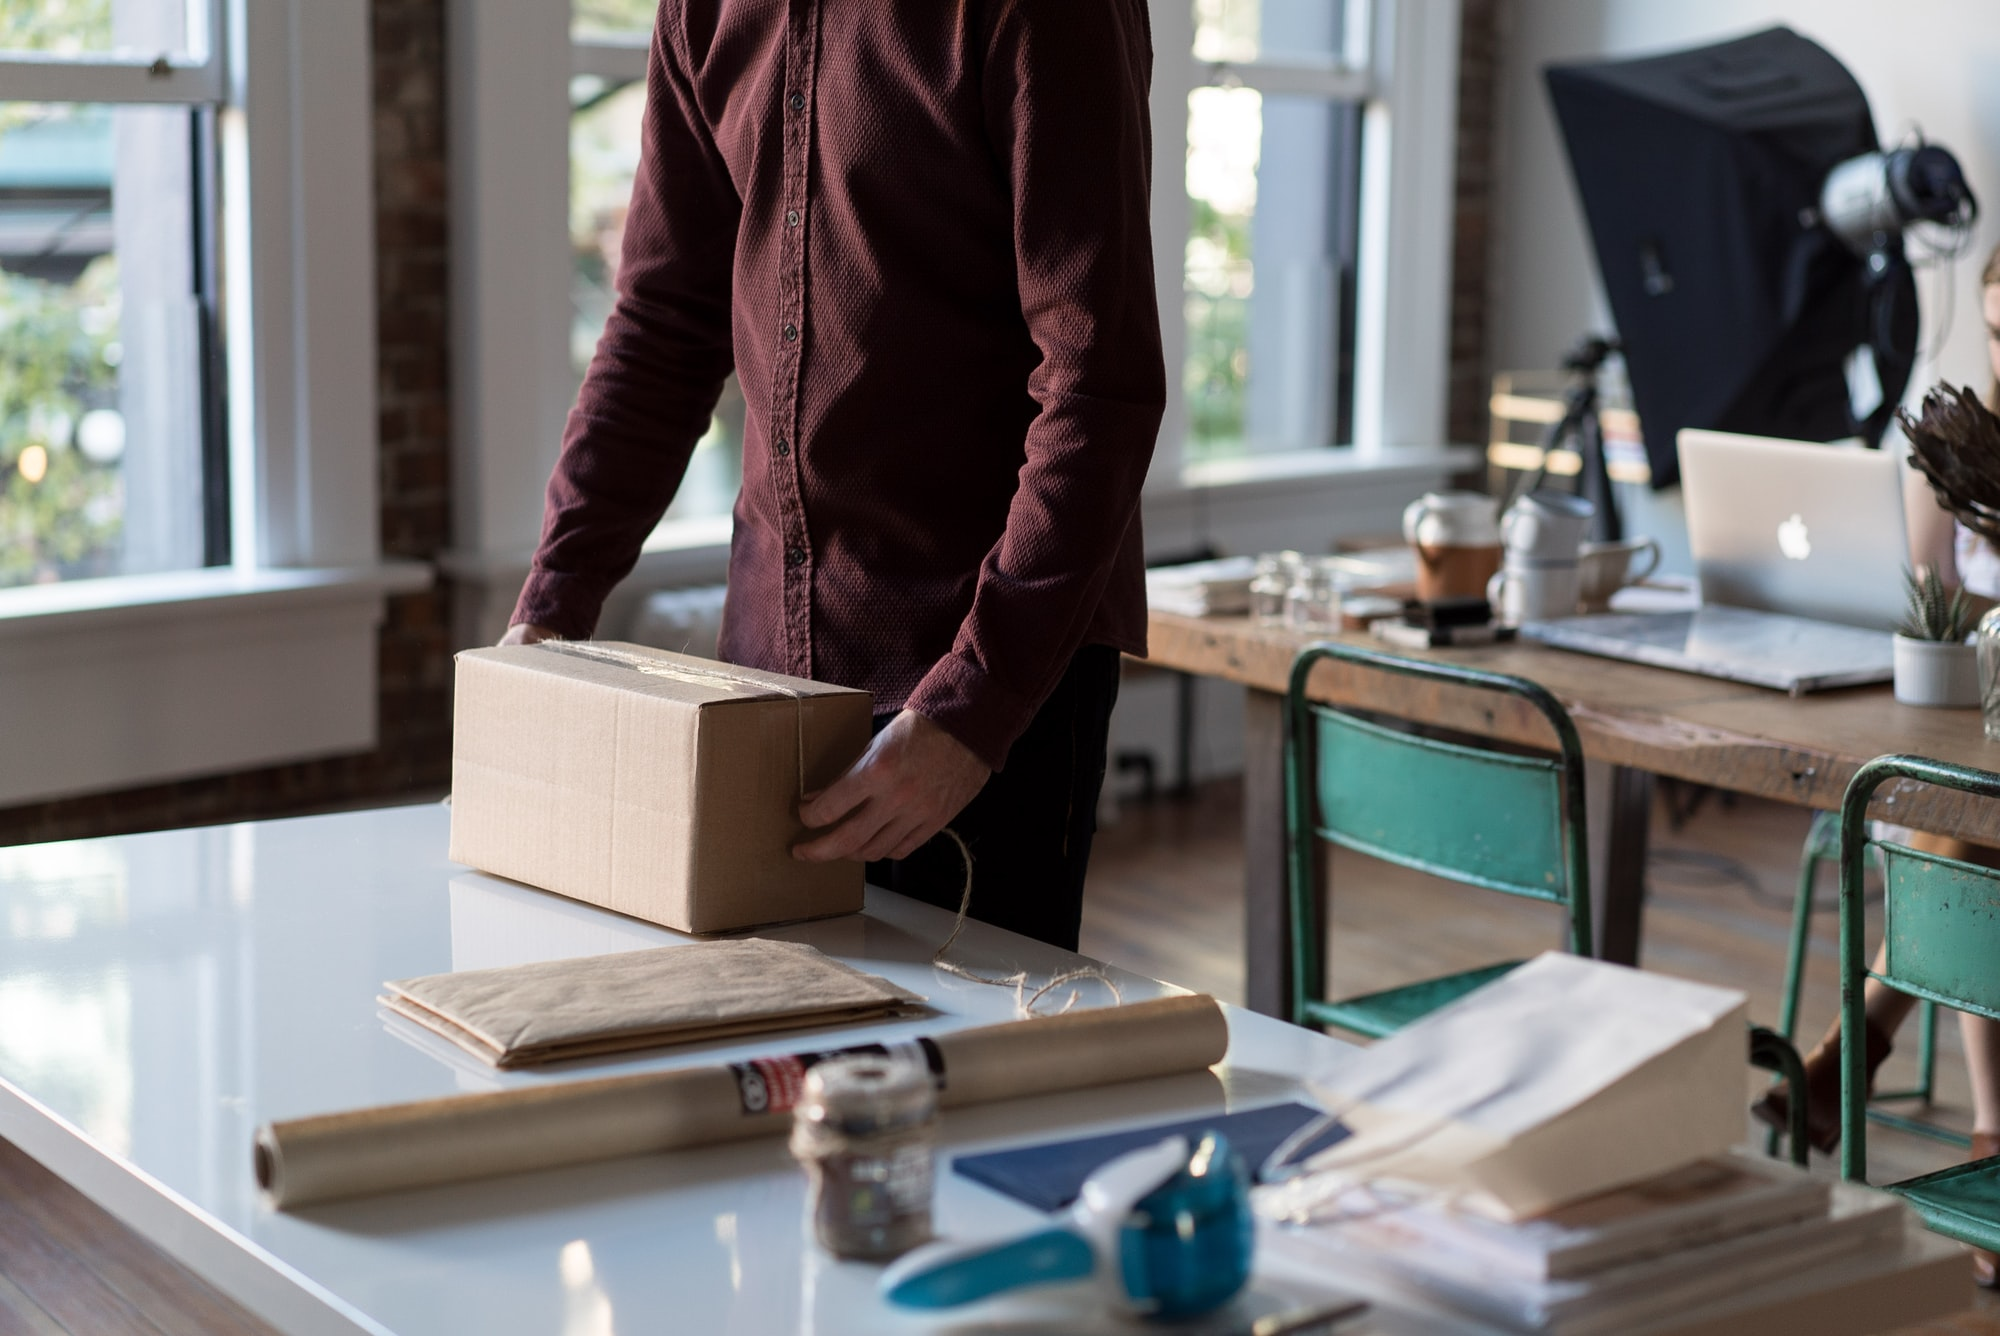 Is Dropshipping Dead in 2021?  Not if You Ask These Experts